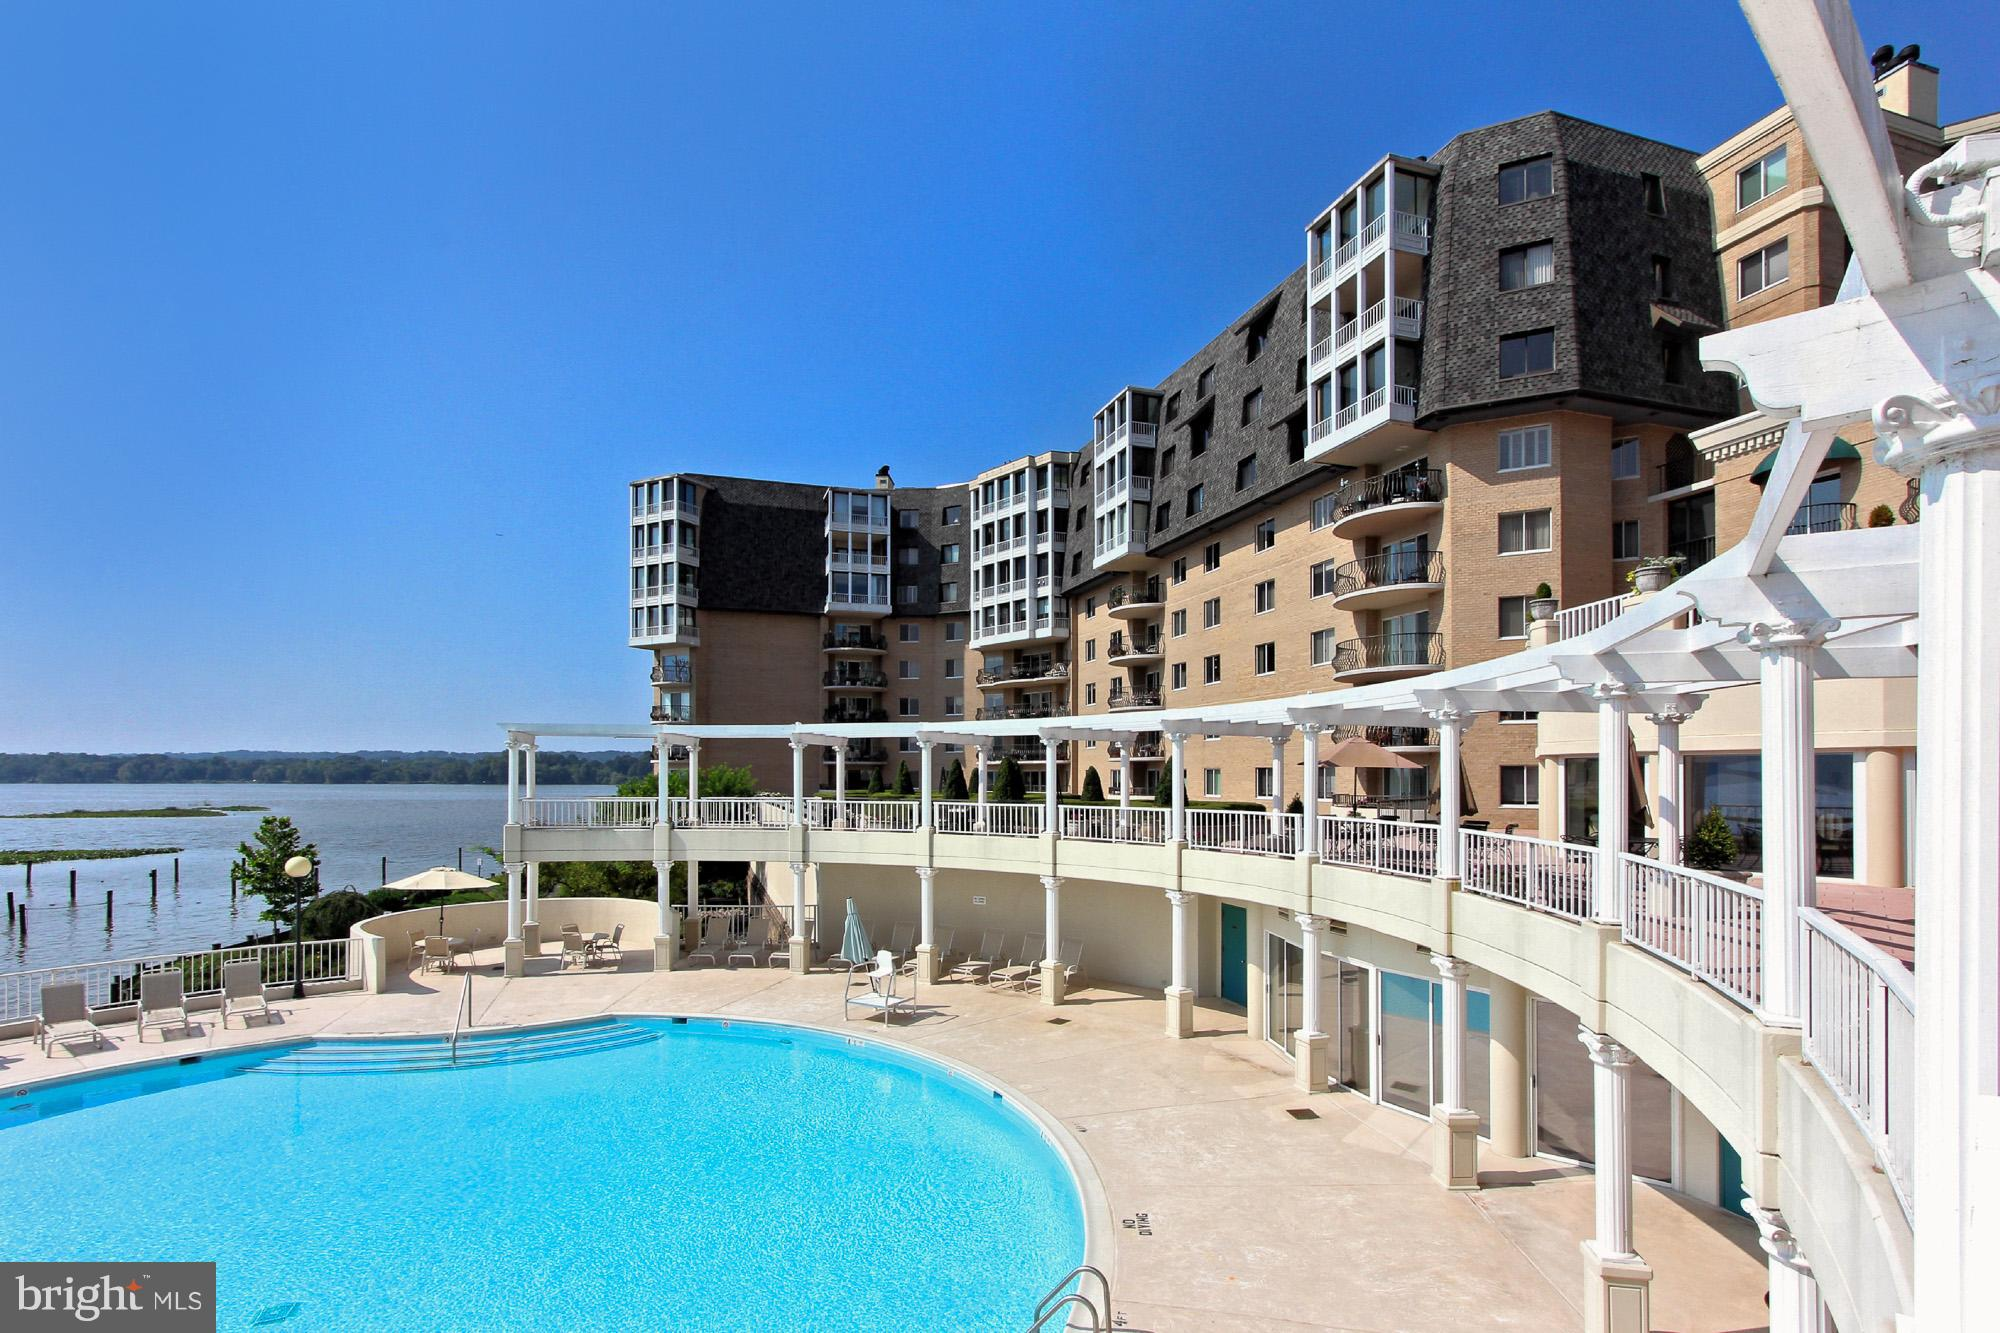 Welcome to resort style living at Porto Vecchio! Bring your special touches to this 2bed/2bath condo w some of the best views in the building--overlooking the Potomac river straight into National Harbor. Original parquet under carpet, gorgeous semi-circular balcony to savor the views, 2 car garage parking + additional storage. Gym, tennis, pool, sauna, security, front desk, limo service, etc, etc!